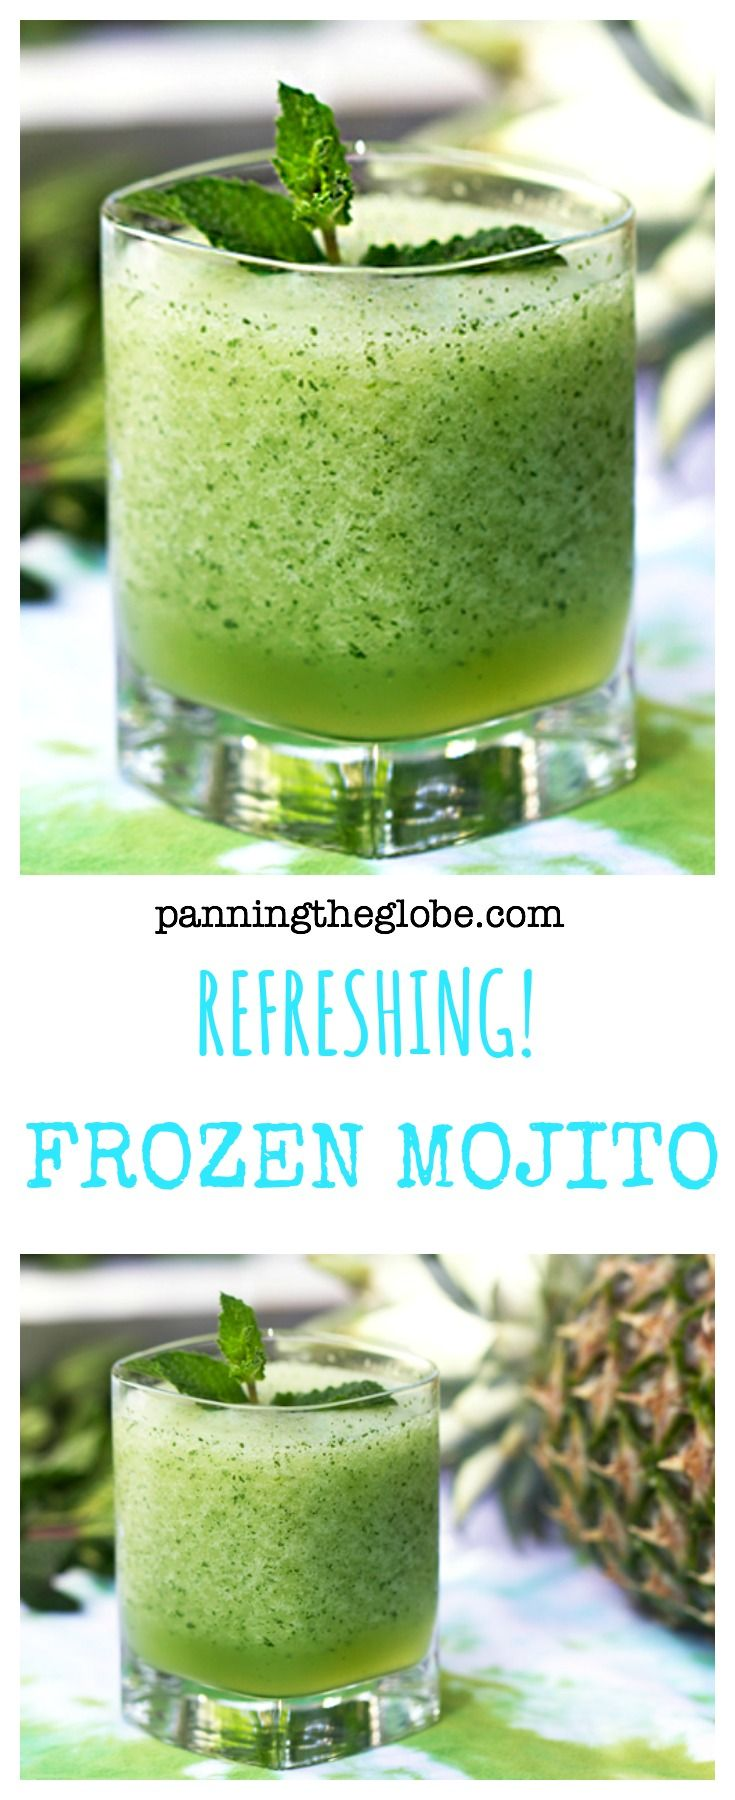 Light, minty and refreshing. Make this ahead, freeze it, and scoop into glasses when you're ready to enjoy!